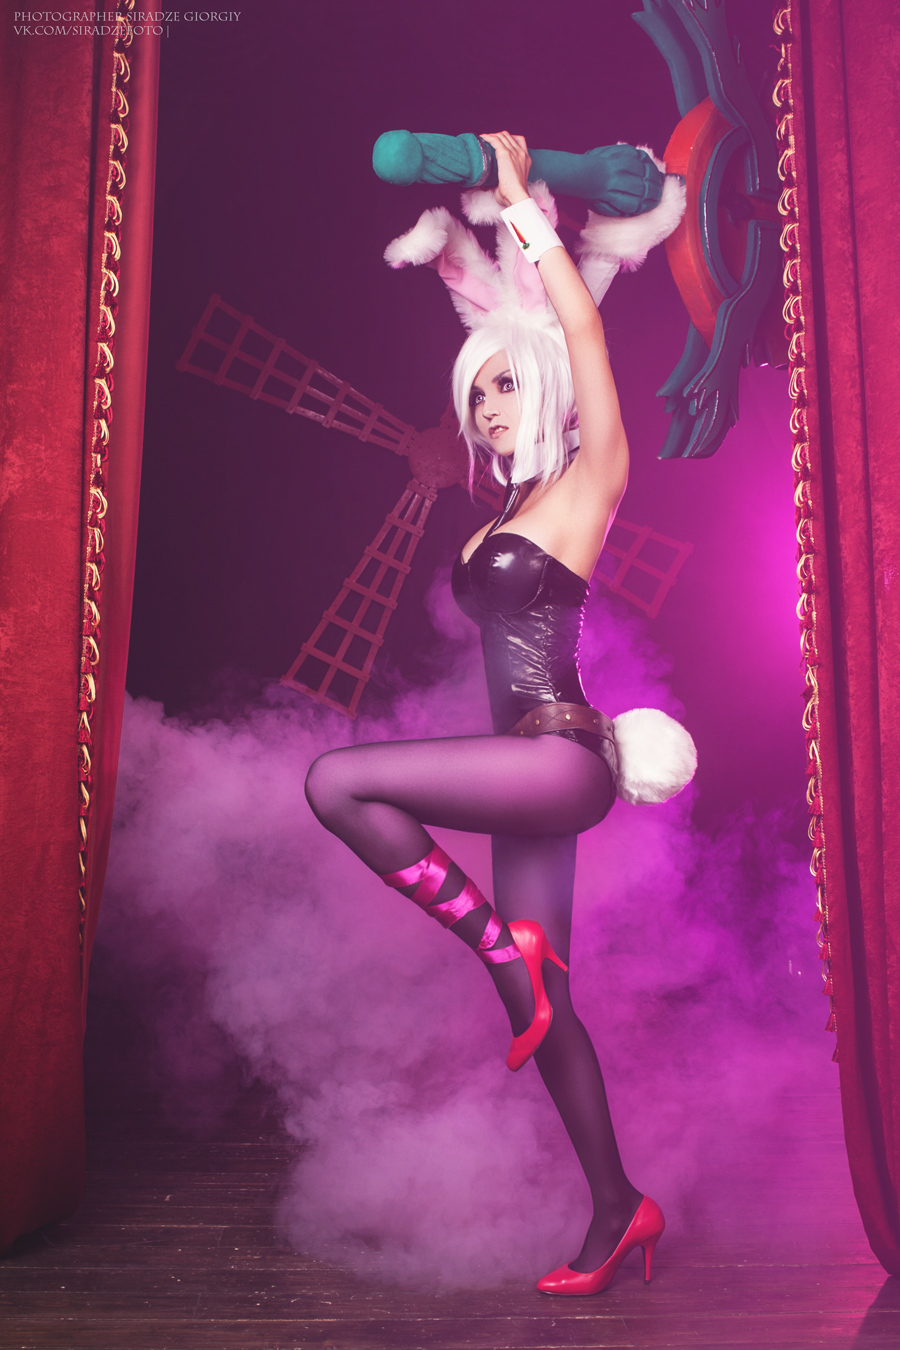 League of legends - Battle Bunny Riven by Siradze